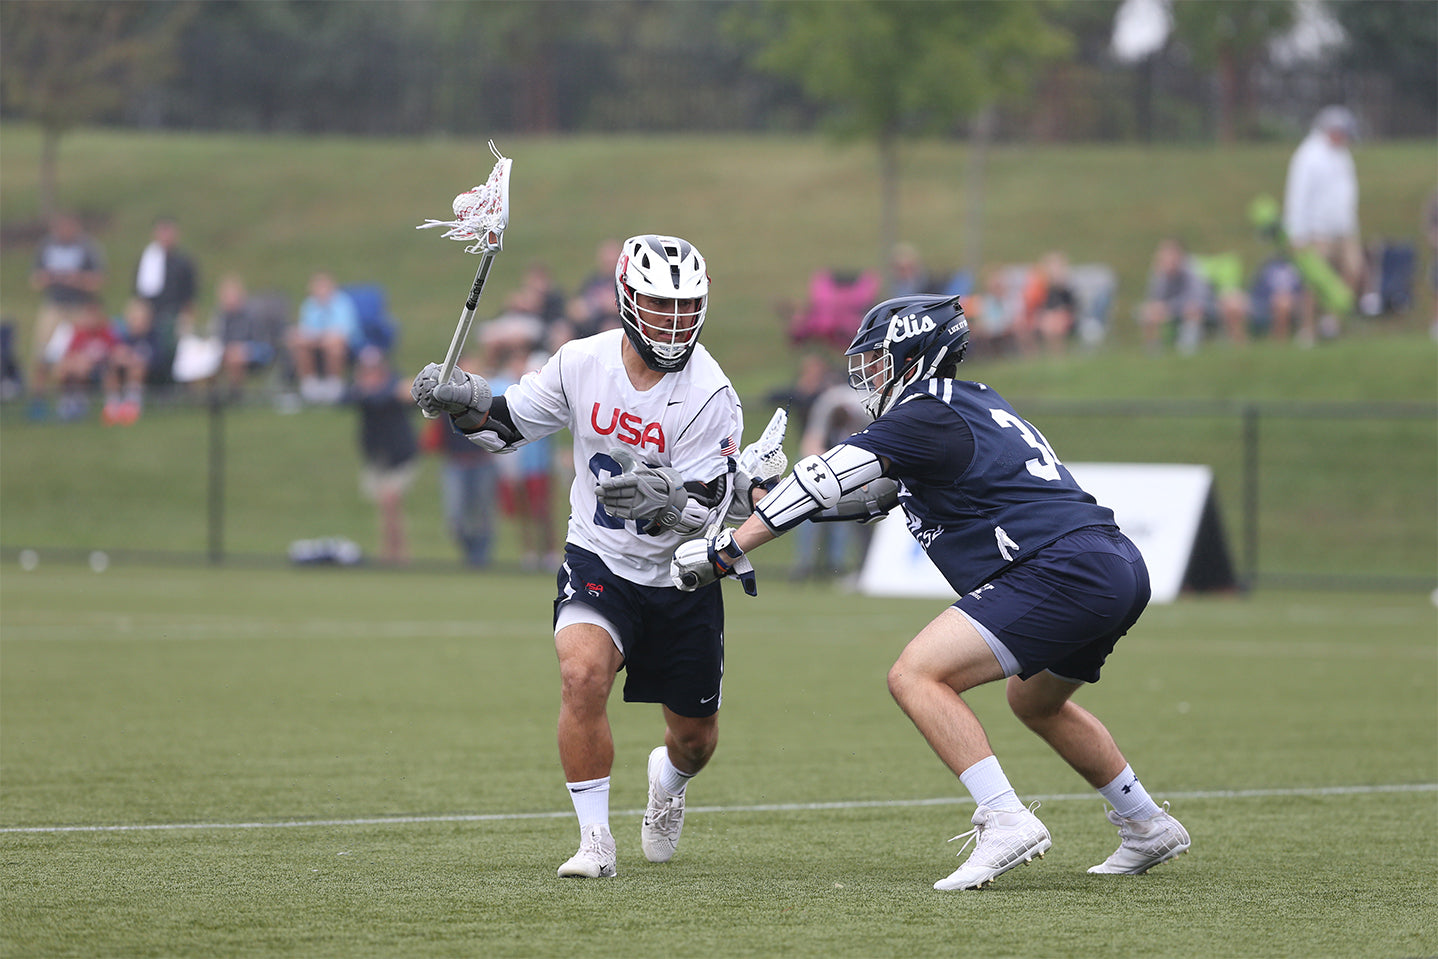 Lacrosse U.S. National Teams Partner with SPT